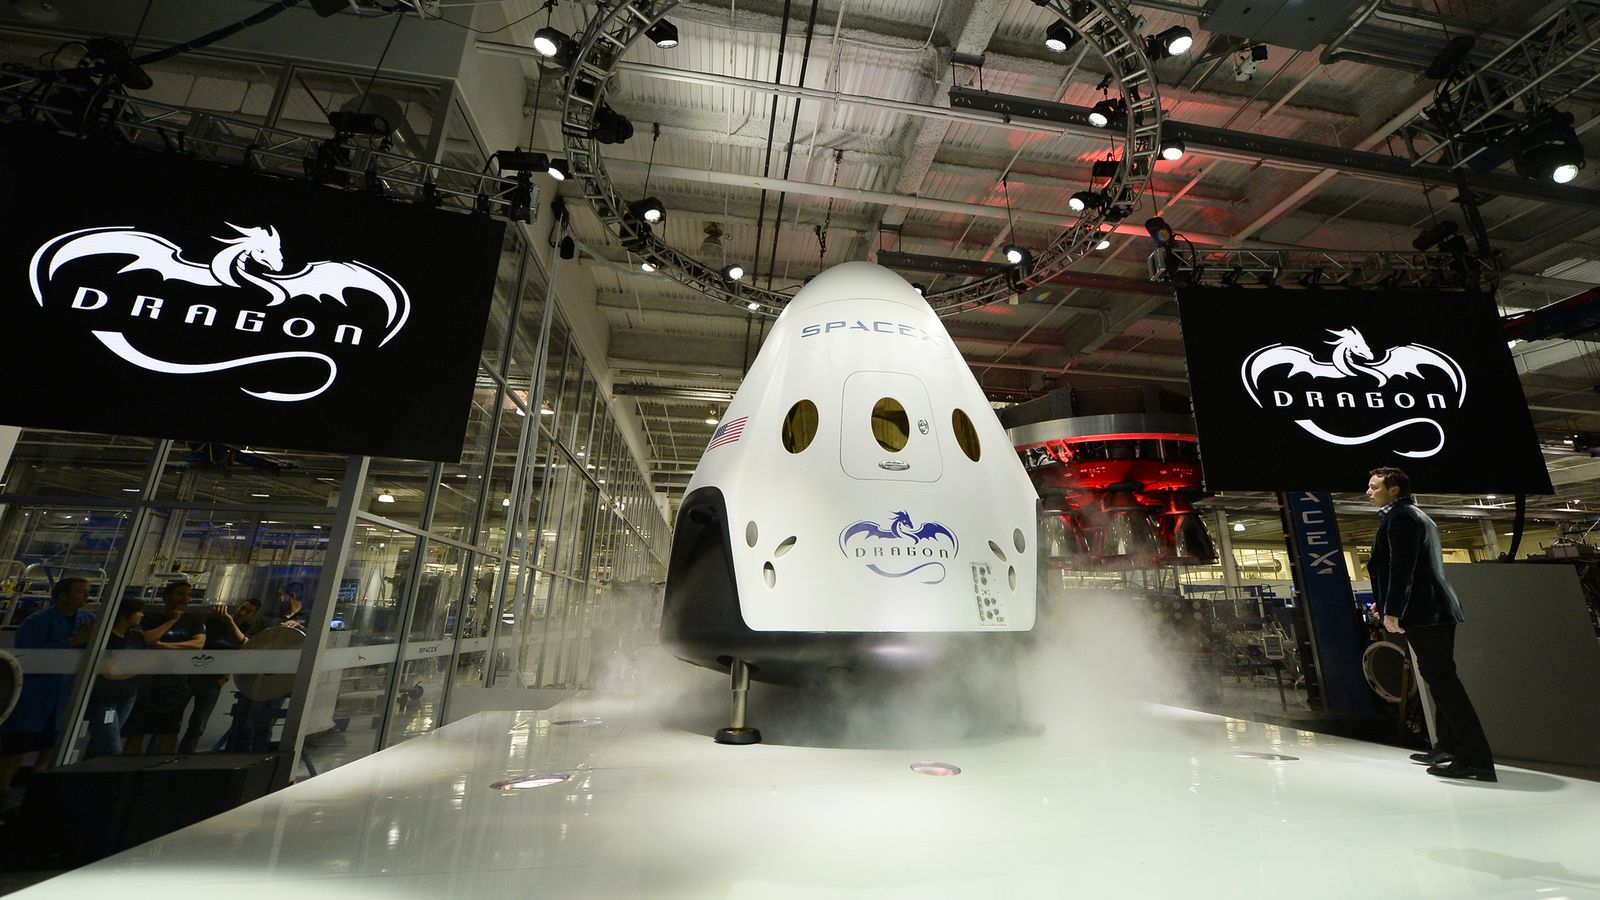 spacex 39 s new dragon capsule could be the future of space travel vox. Black Bedroom Furniture Sets. Home Design Ideas